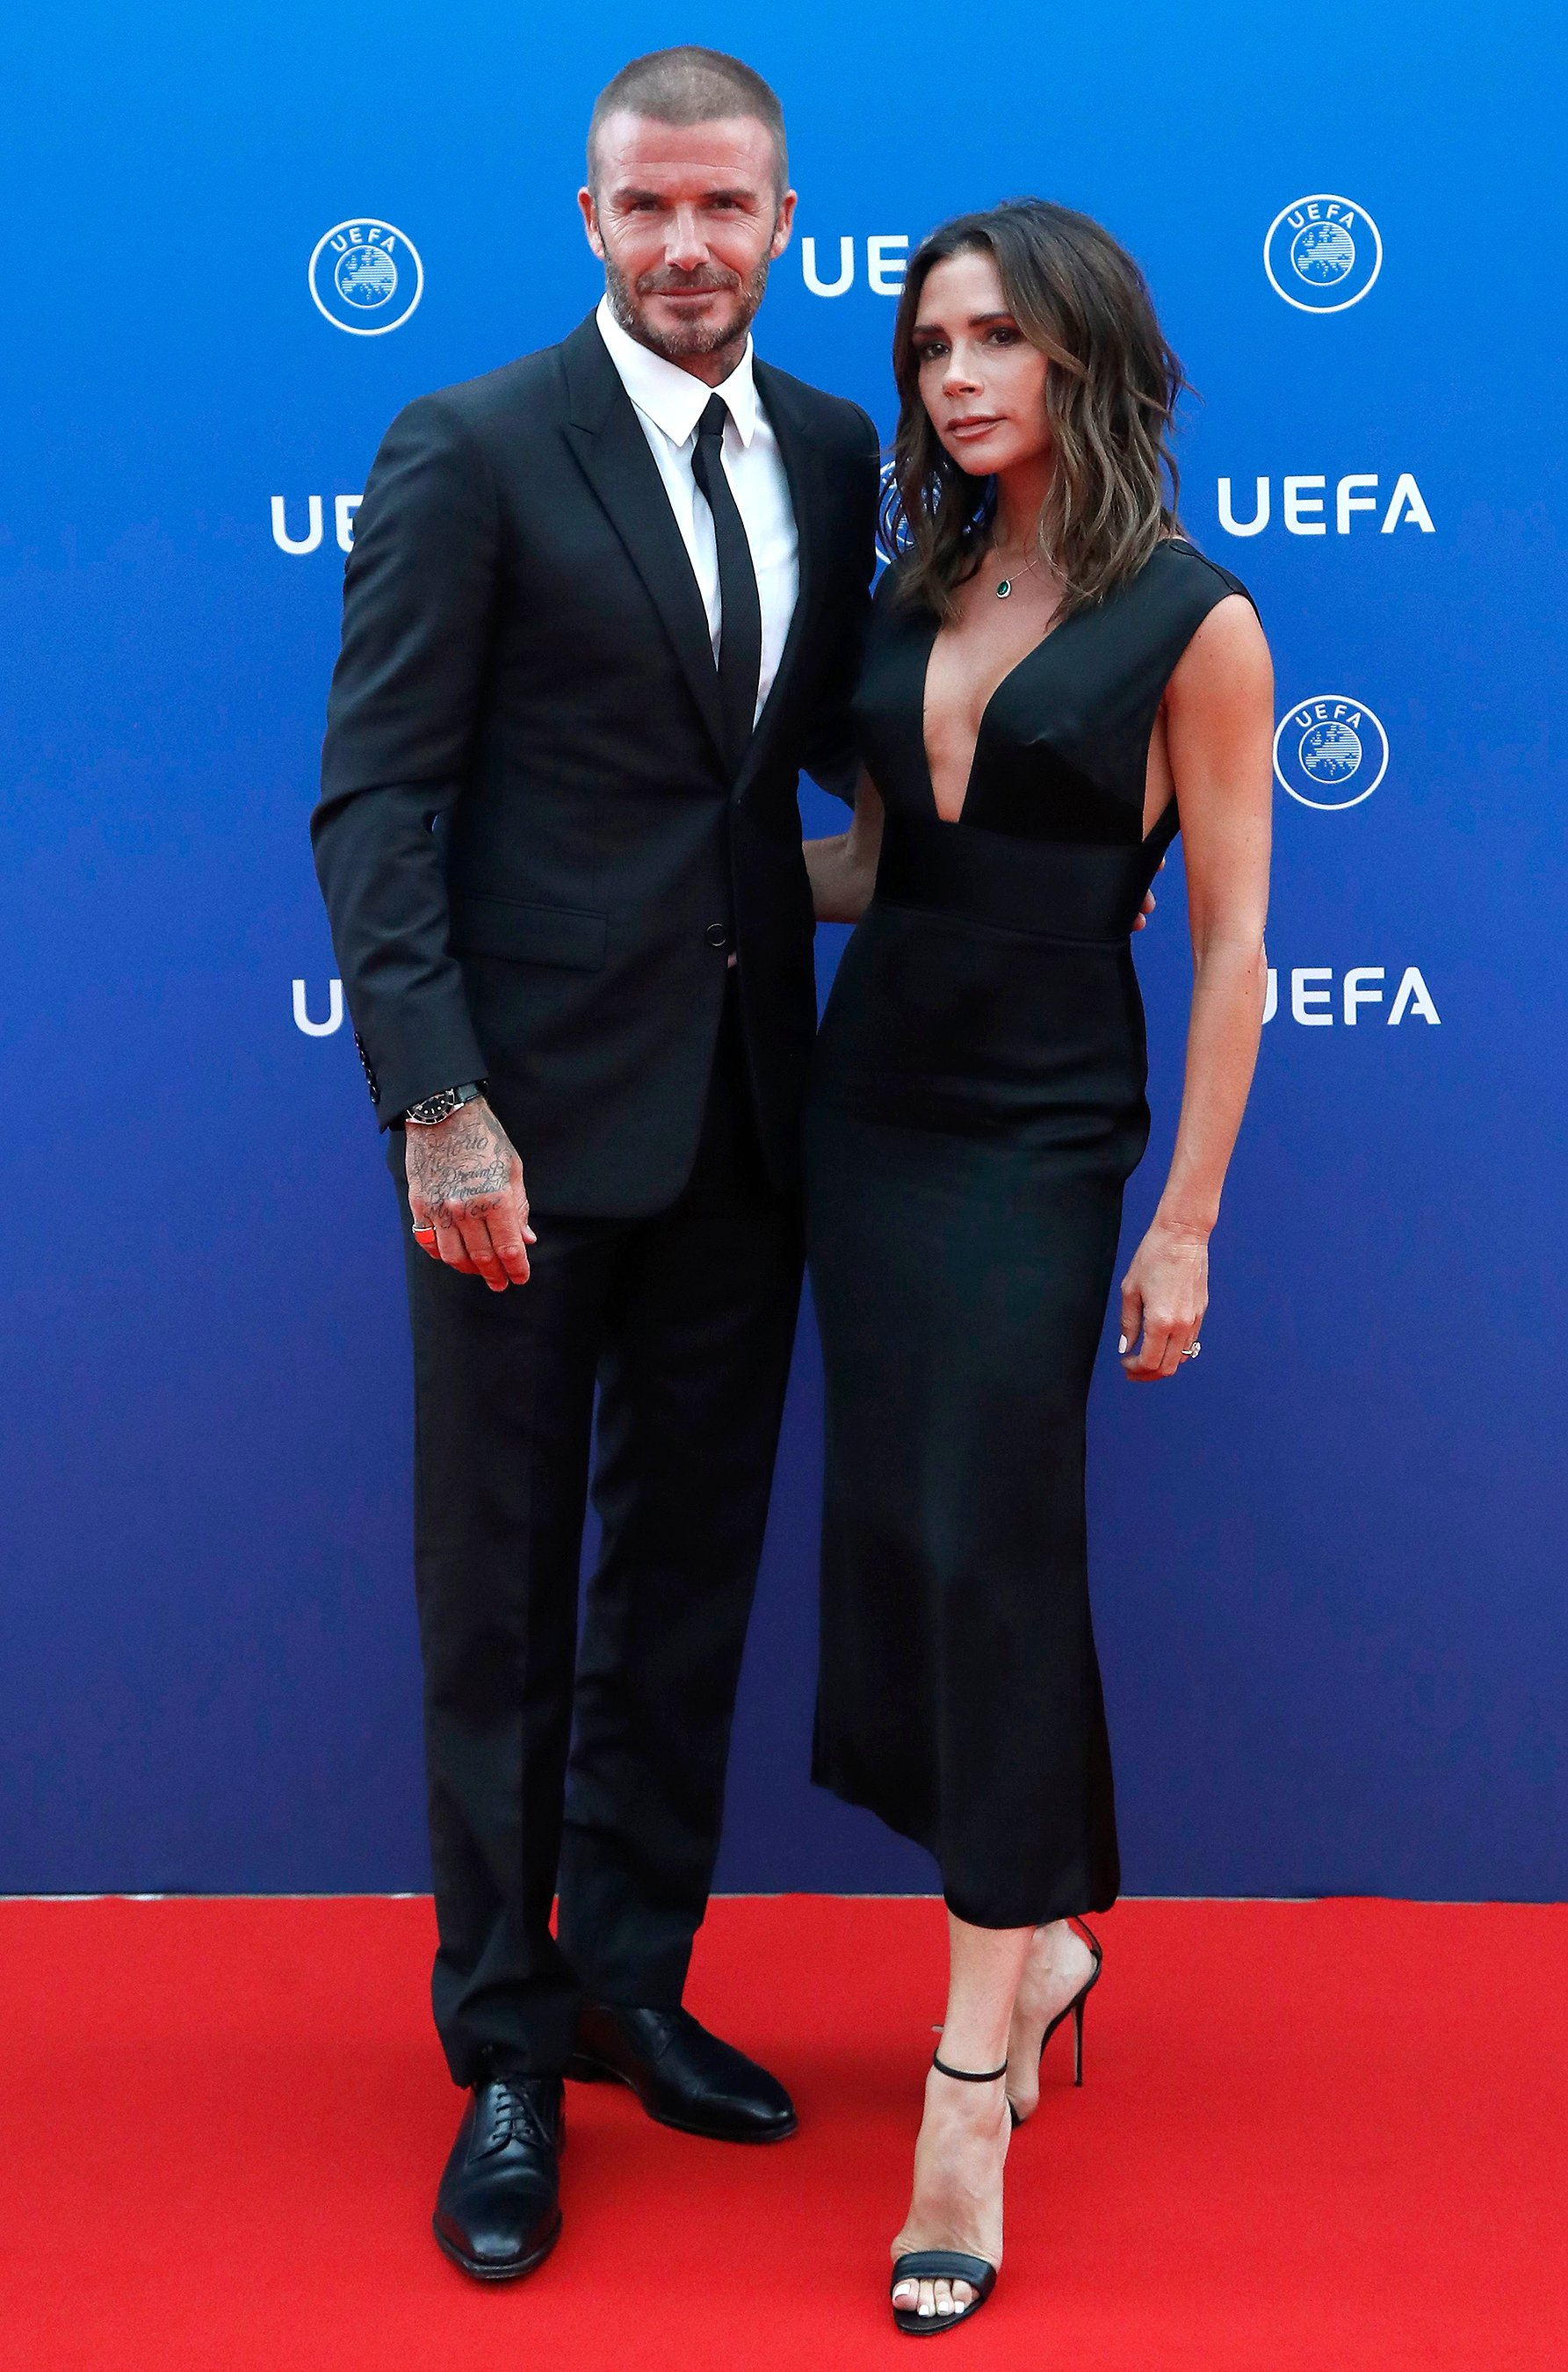 Date Night! David and Victoria Beckham Make First Red Carpet Appearance in 3 Years